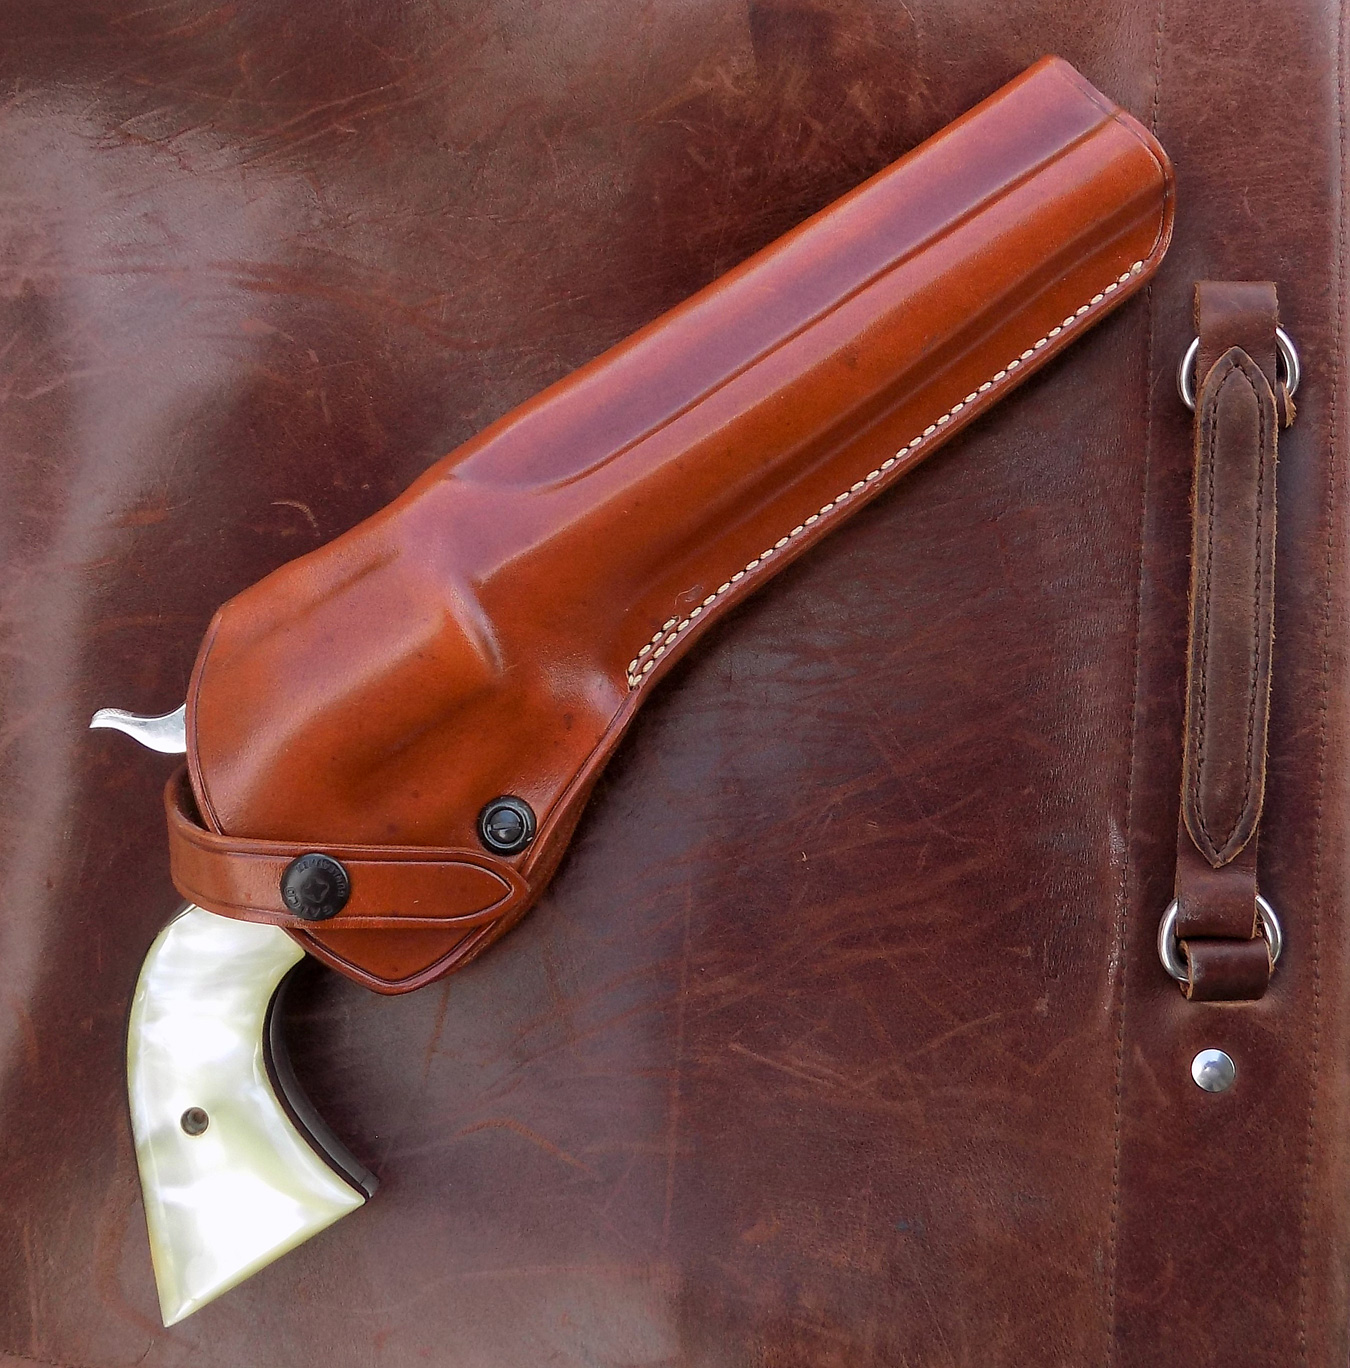 Galco SAA holster